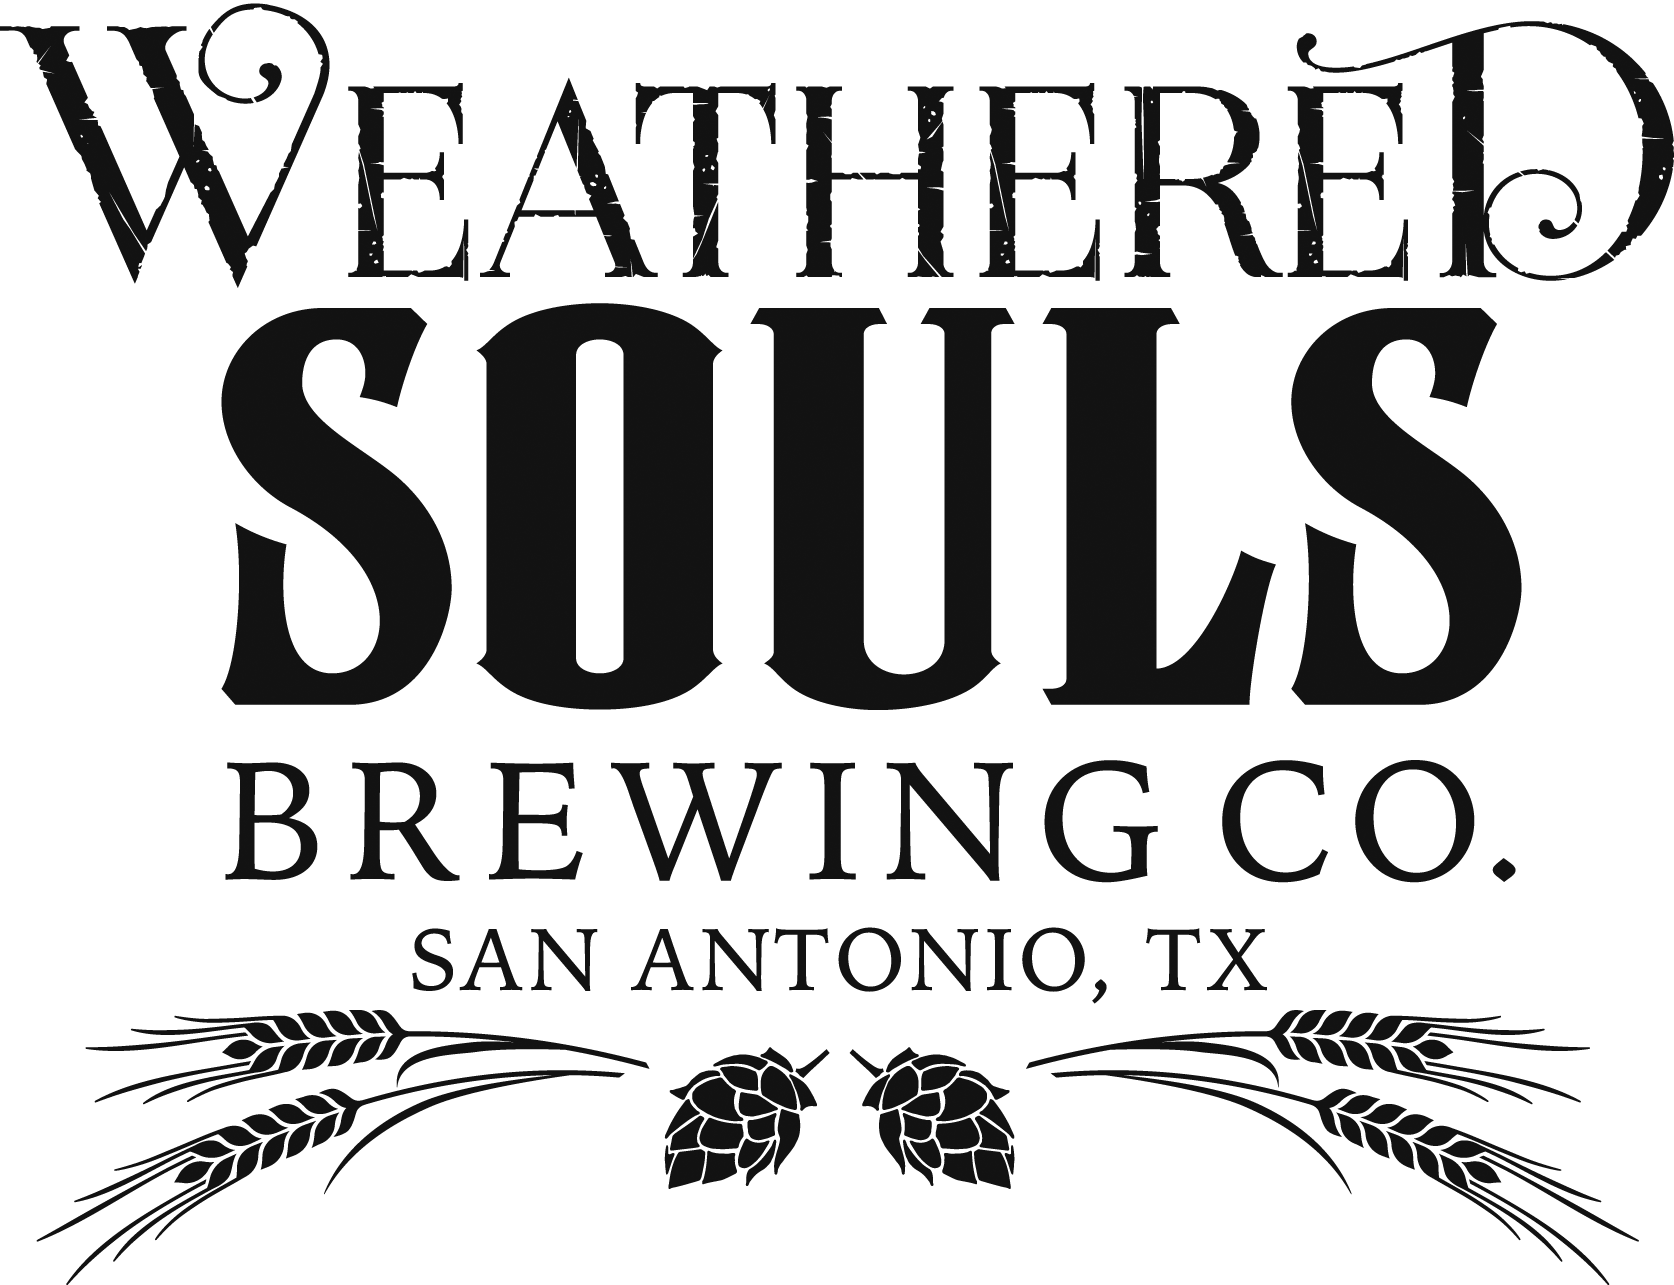 Weathered Souls Brewing Co  Adds Distribution in San Antonio